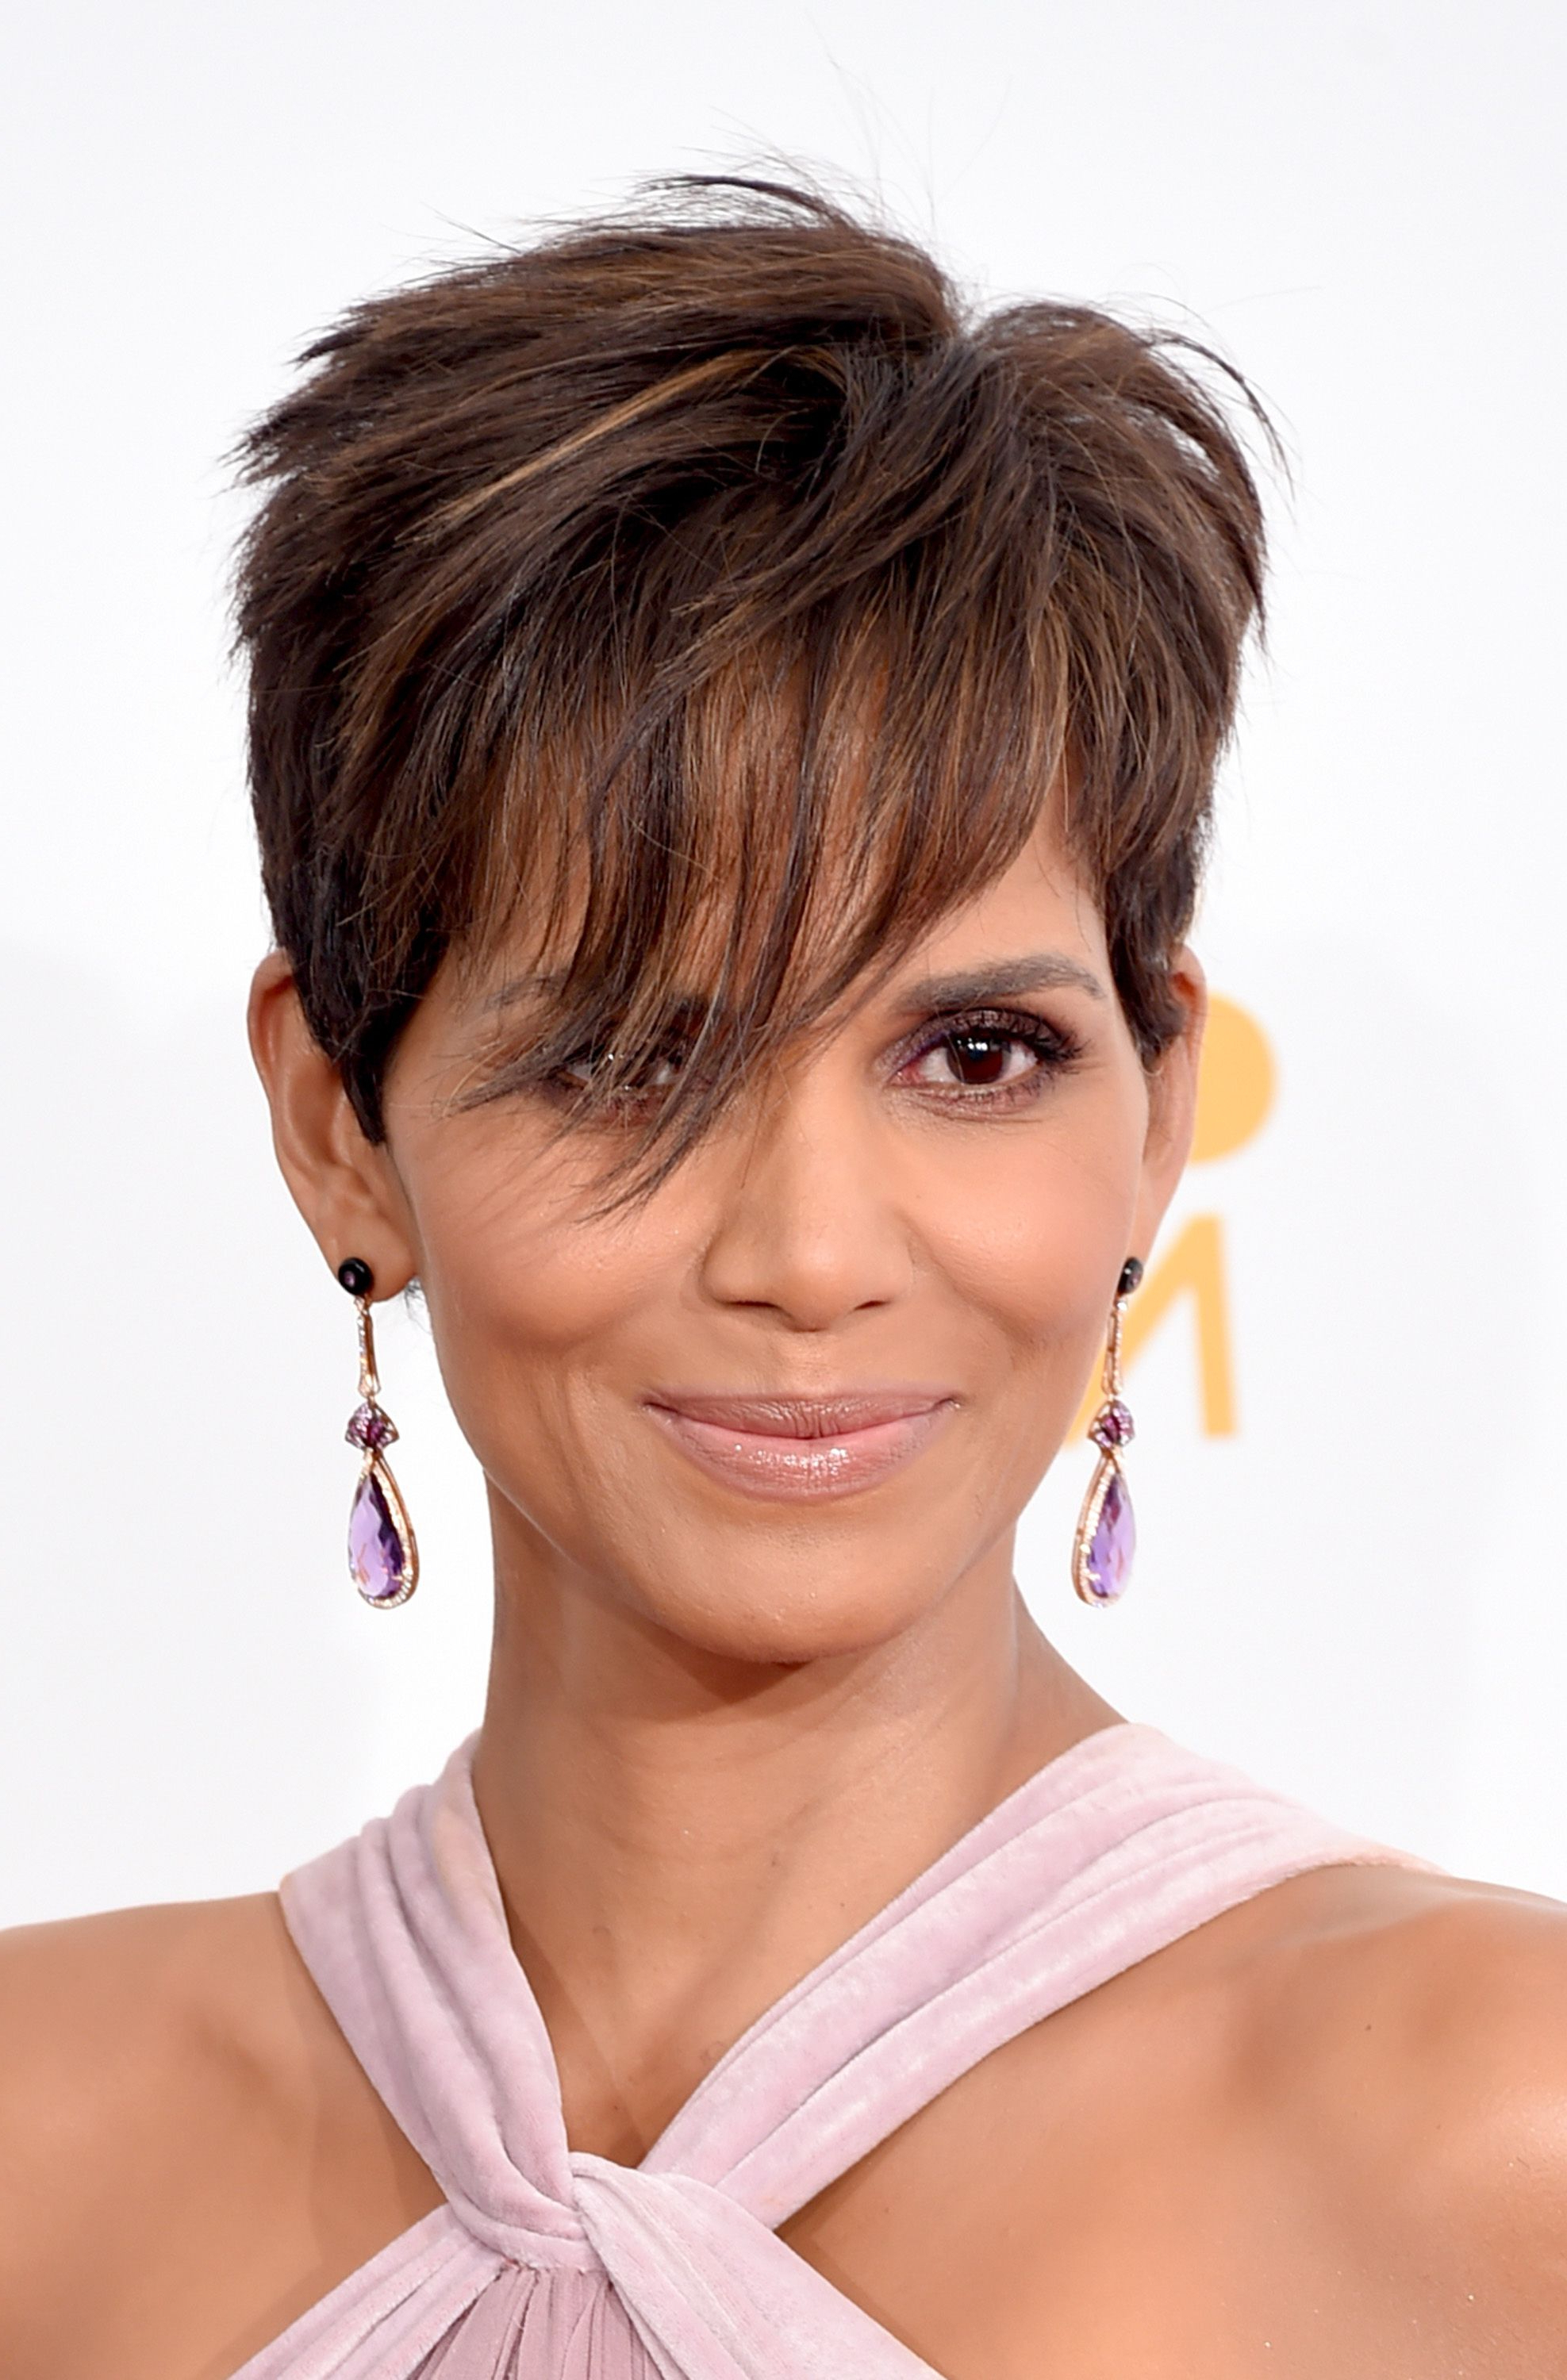 40 Best Short Pixie Cut Hairstyles 2018 – Cute Pixie Haircuts For Women For Ruffled Pixie Hairstyles (View 9 of 20)